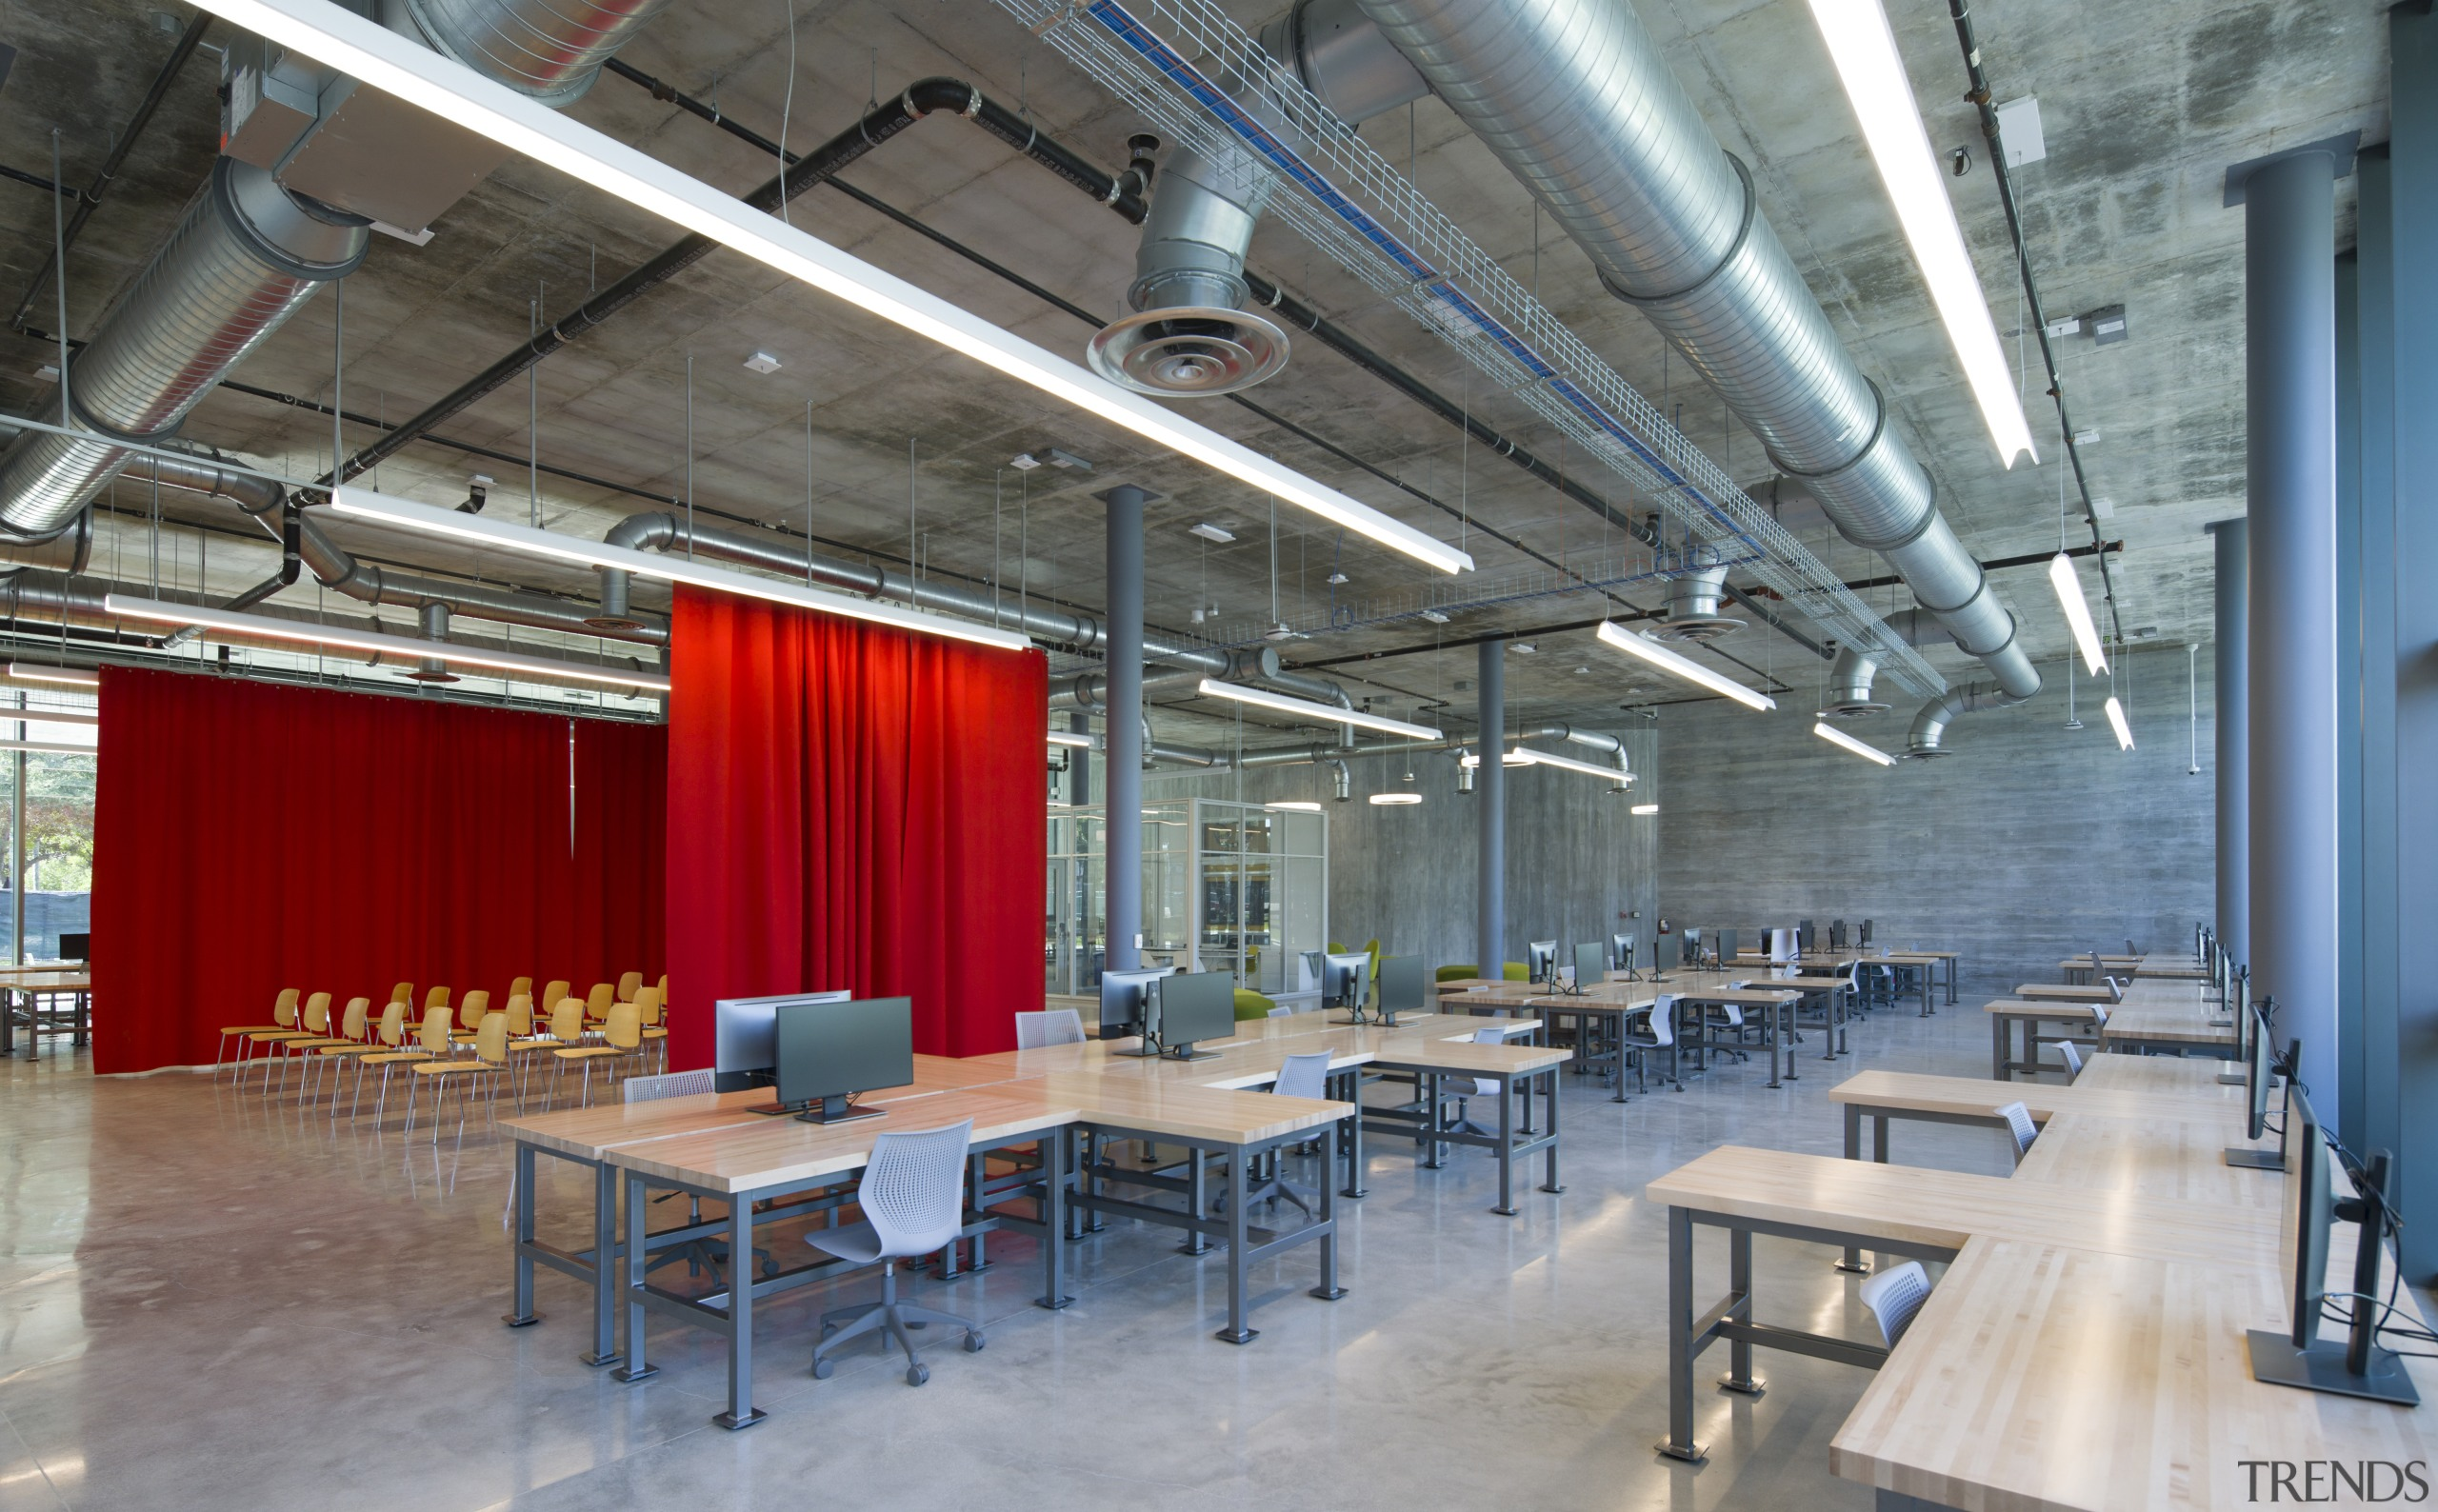 Desking options are reconfigurable in the open-plan new architecture, building, ceiling, classroom, furniture, interior design, loft, office, seating, desking, desks, University architecture studio